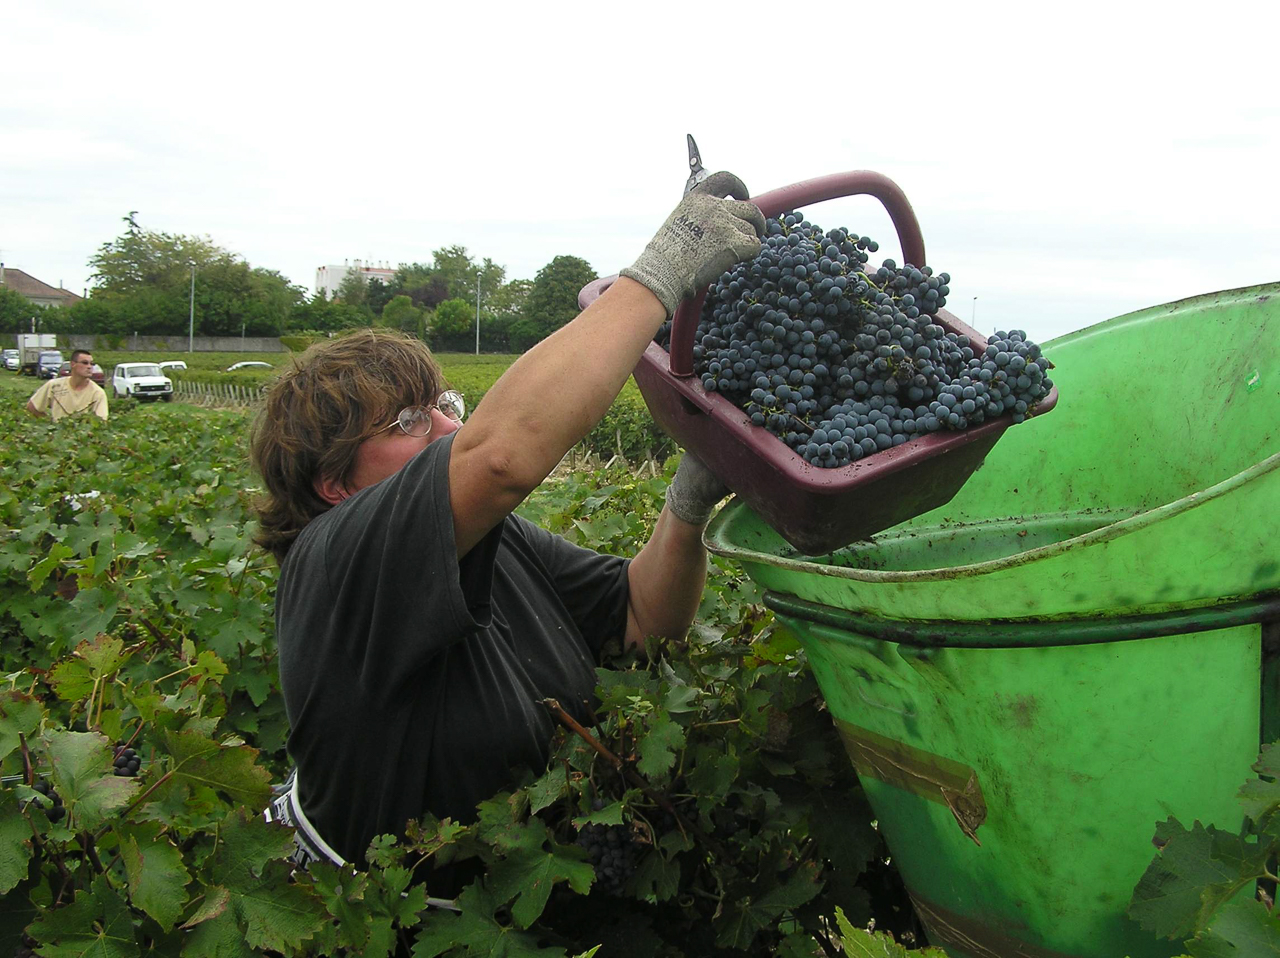 Picking Grapes - In Bordeaux